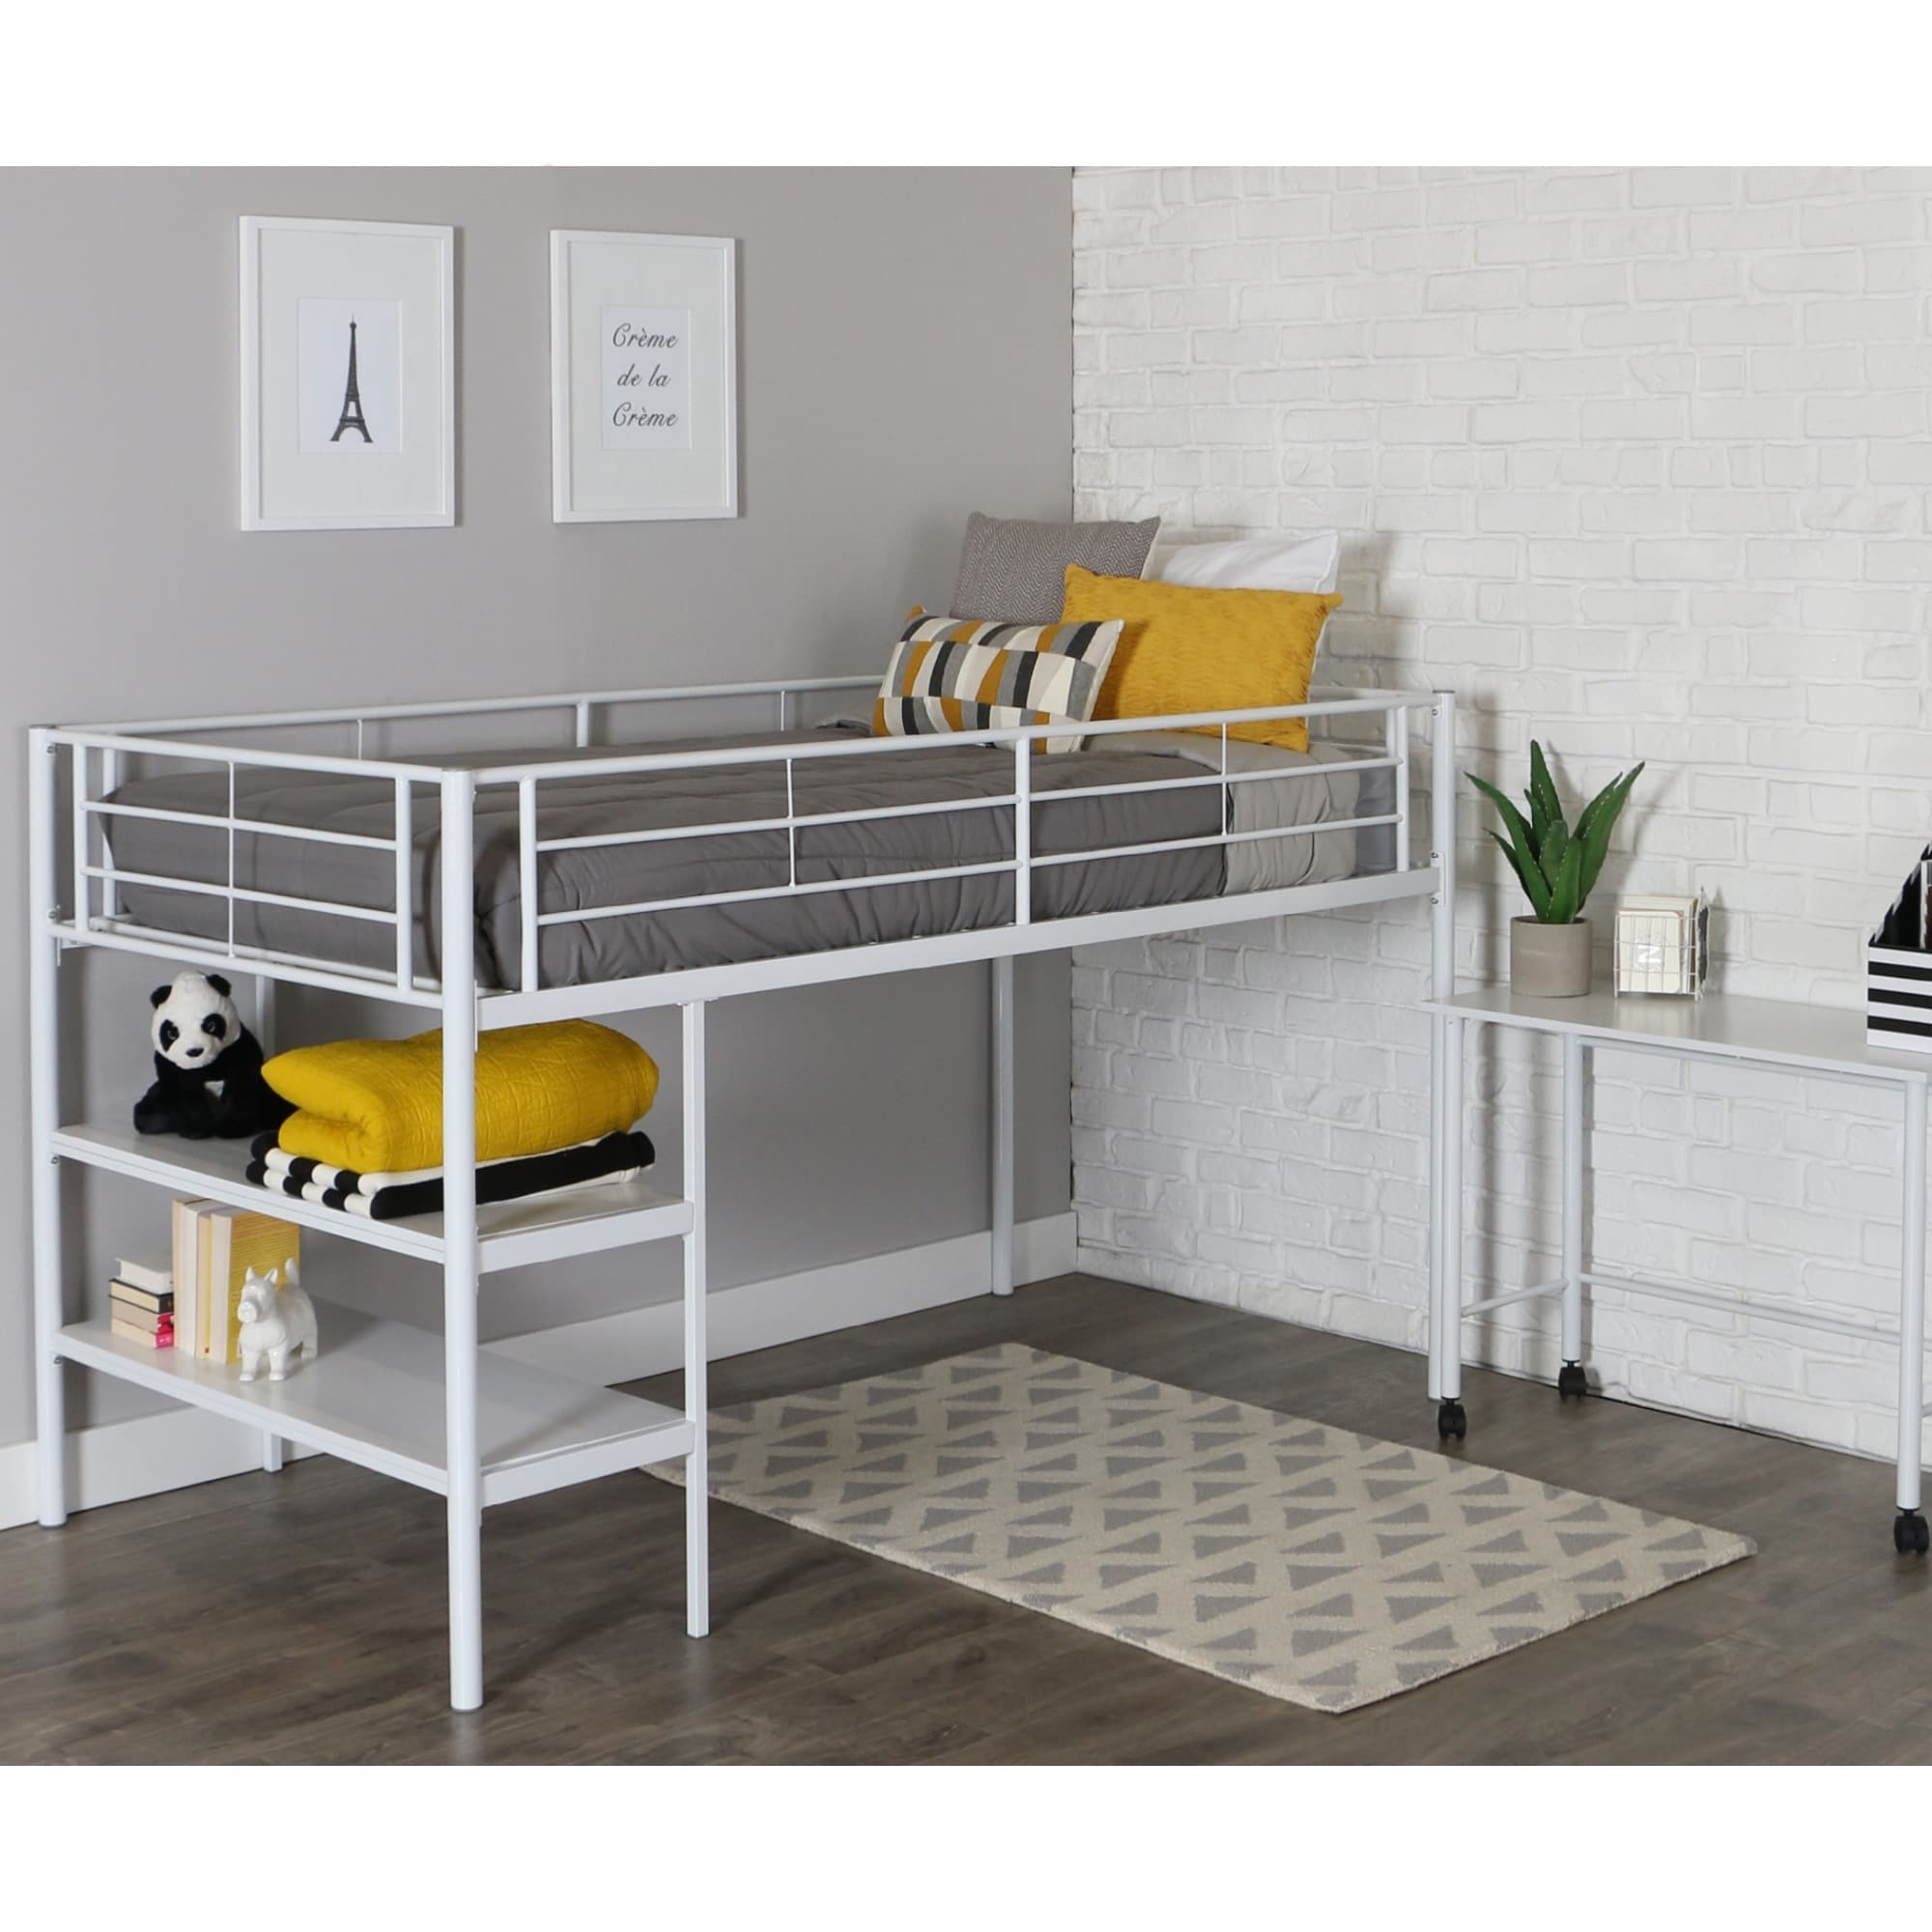 kids bunk l baby harriet bee full reviews desk shaped pdx with bed over loft wayfair twin chumbley